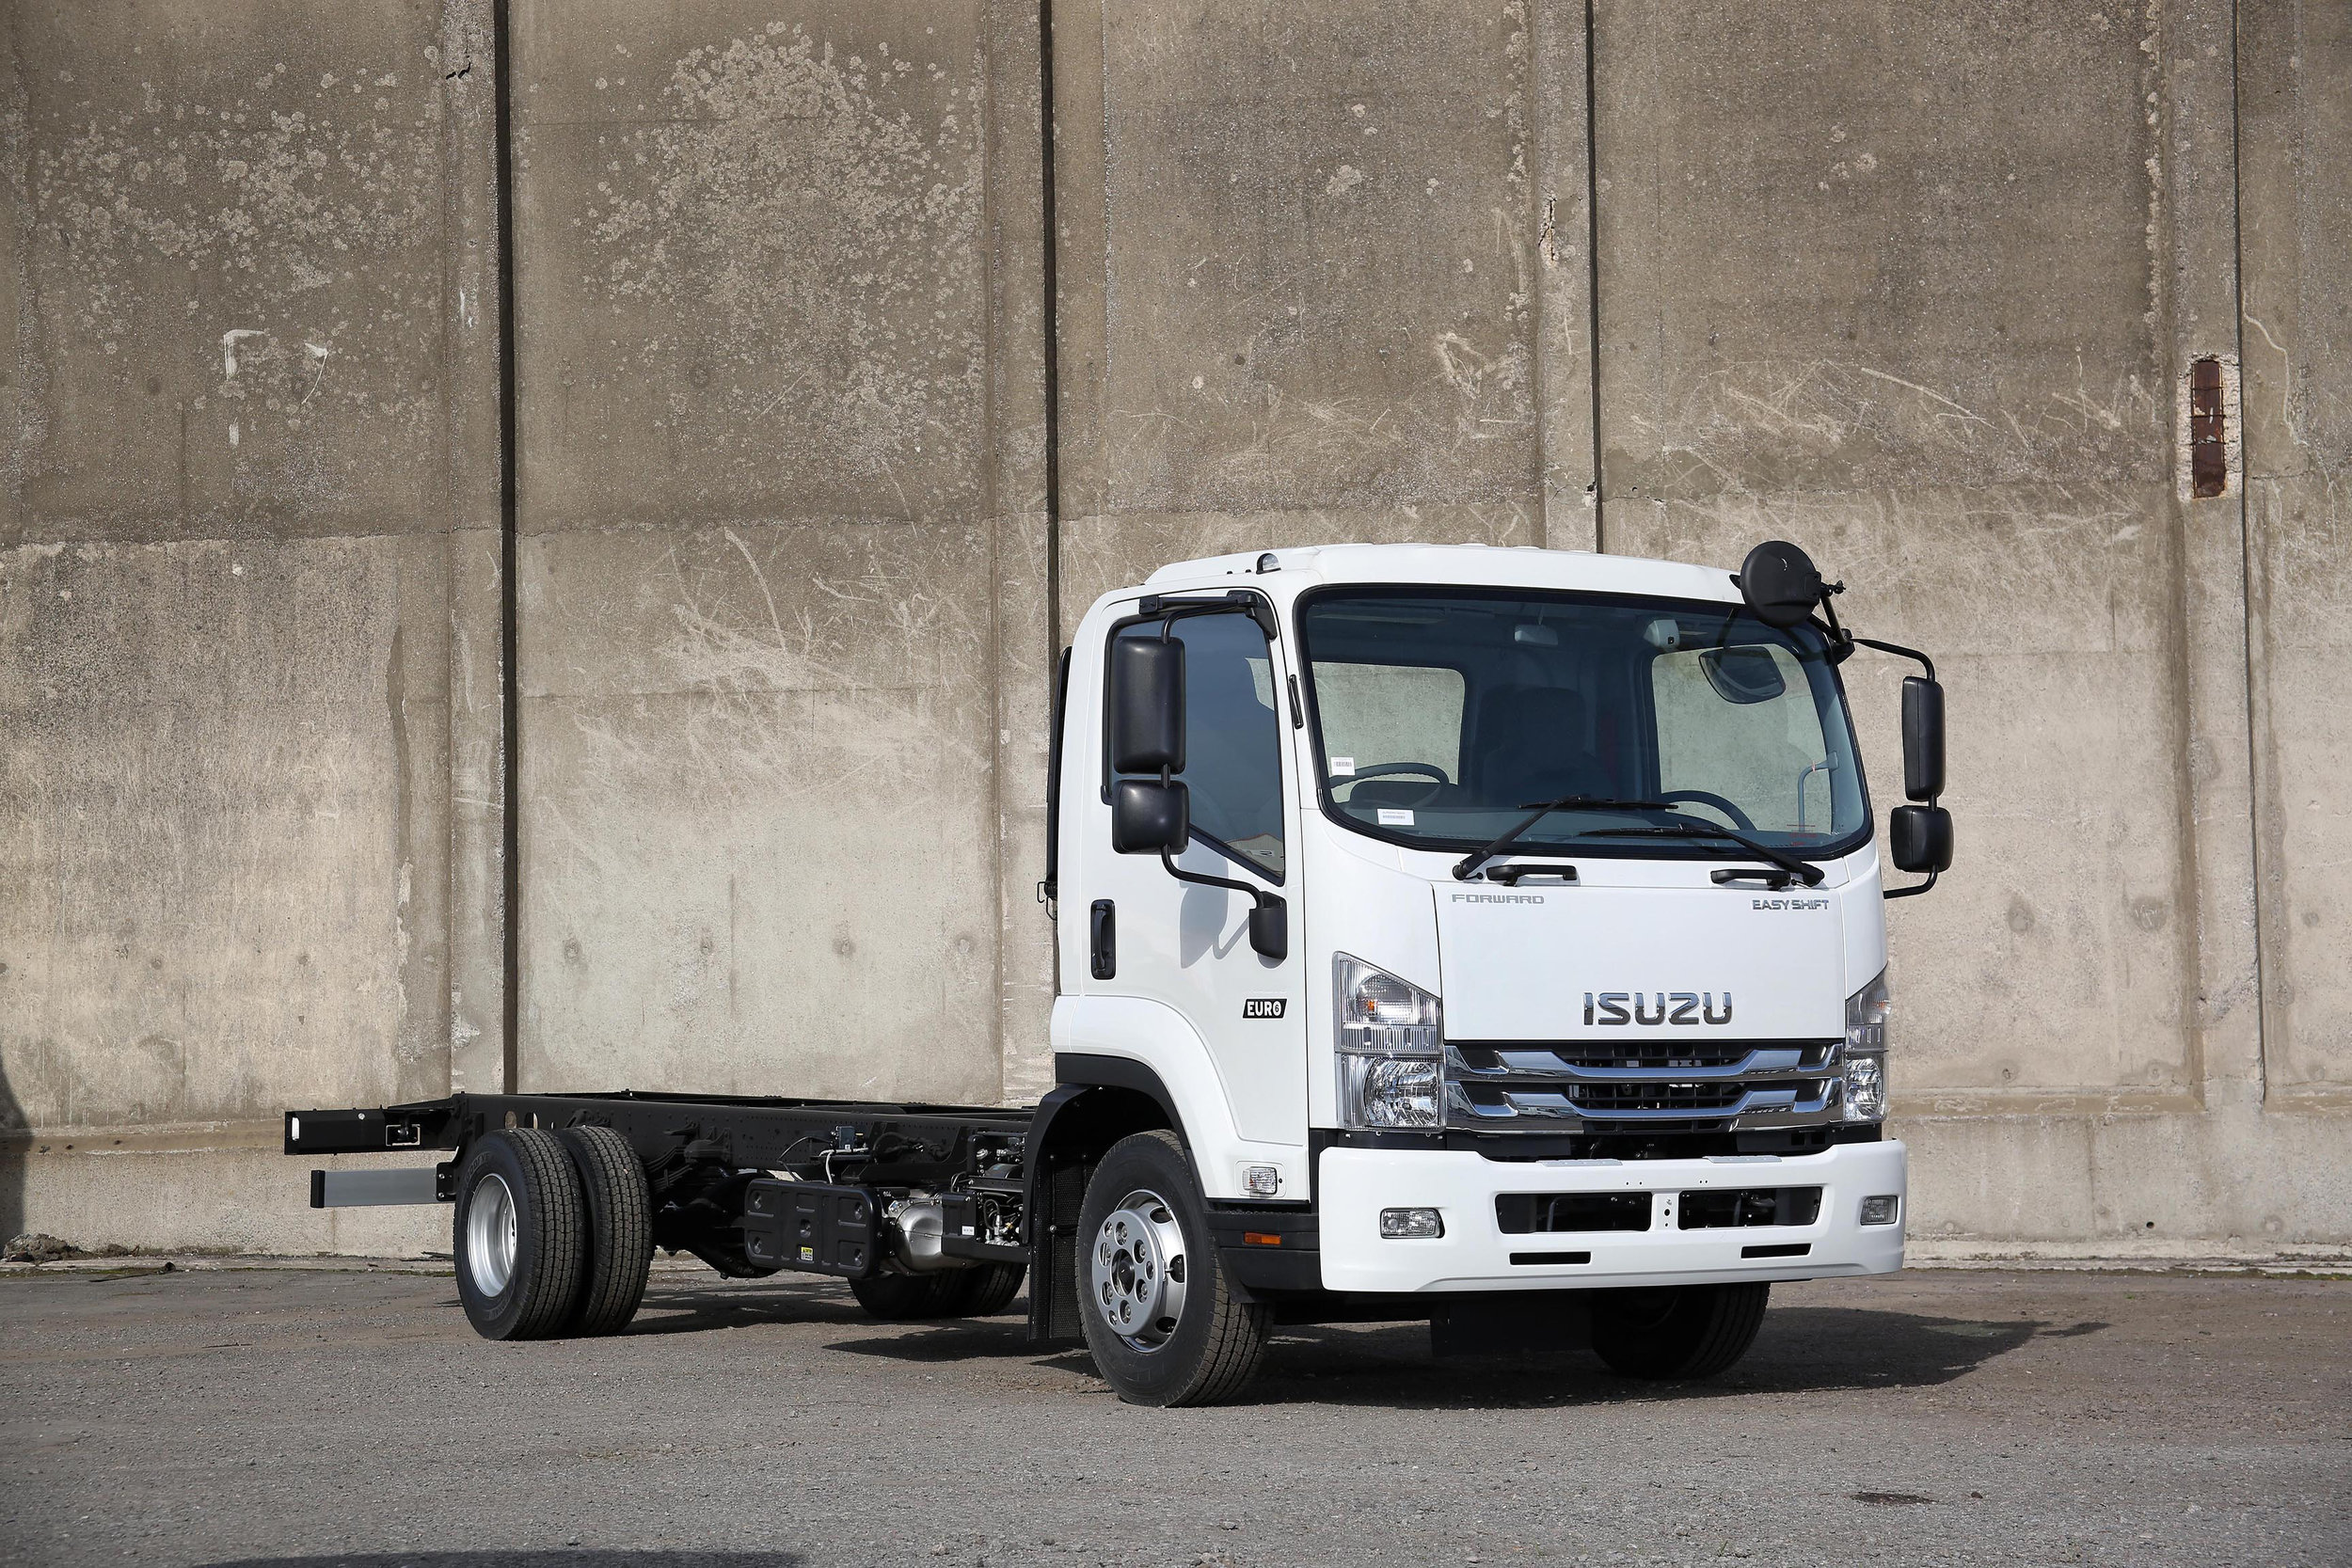 ISUZU 11-13.5 TONNE - Versatile and powerful, with big payload and small footprint.Available in multiple specifications.